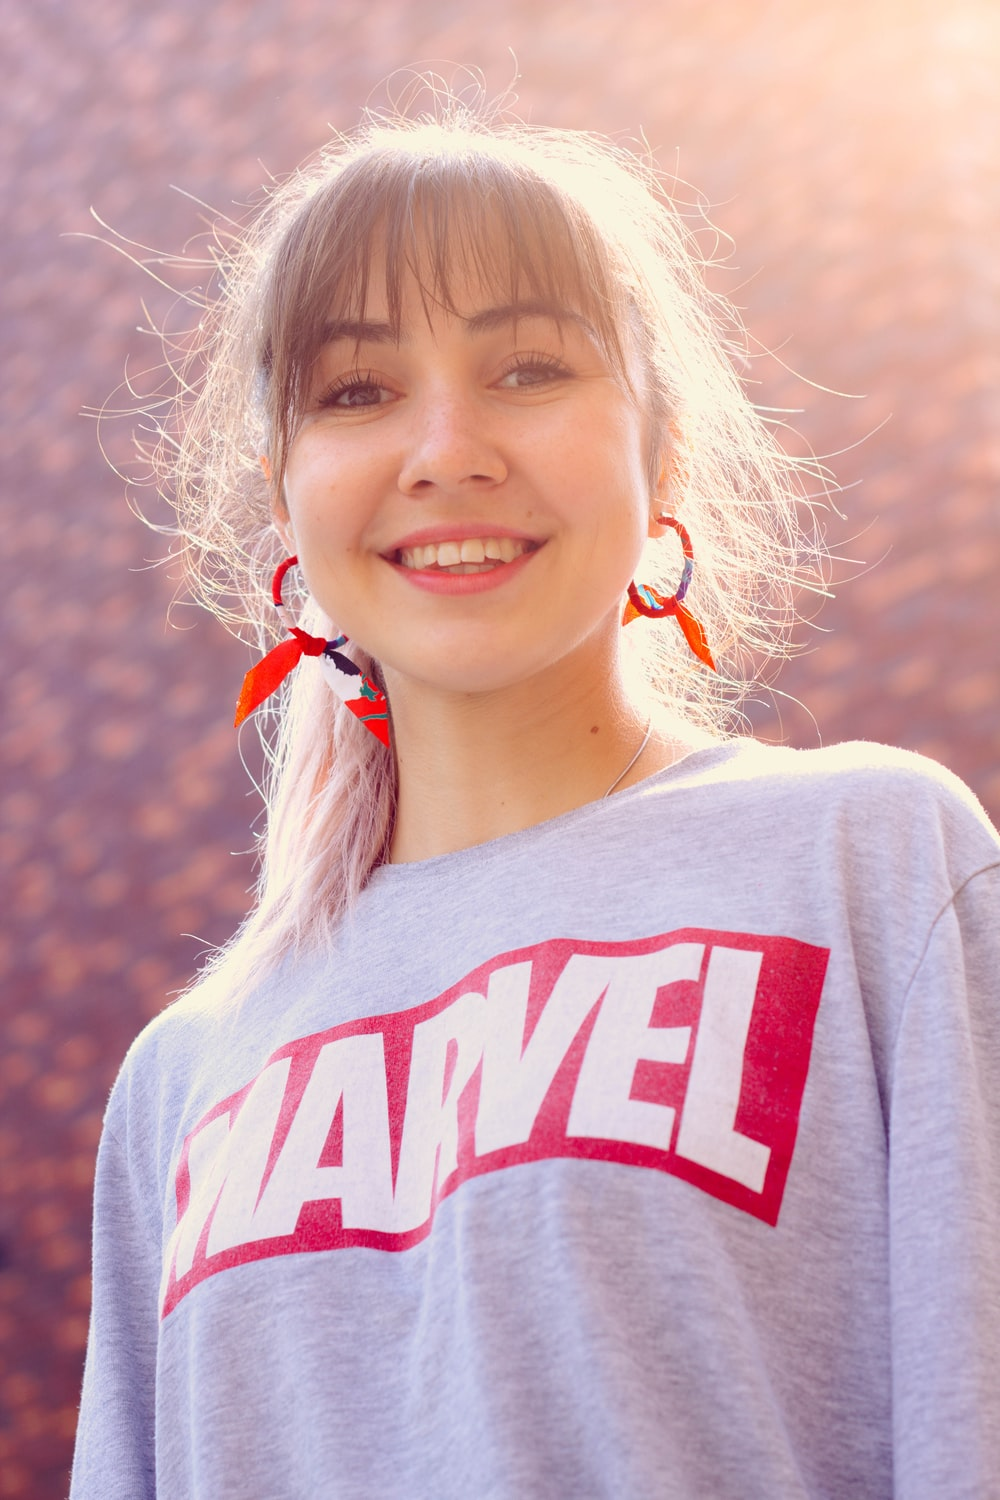 woman wearing gray and red Marvel shirt